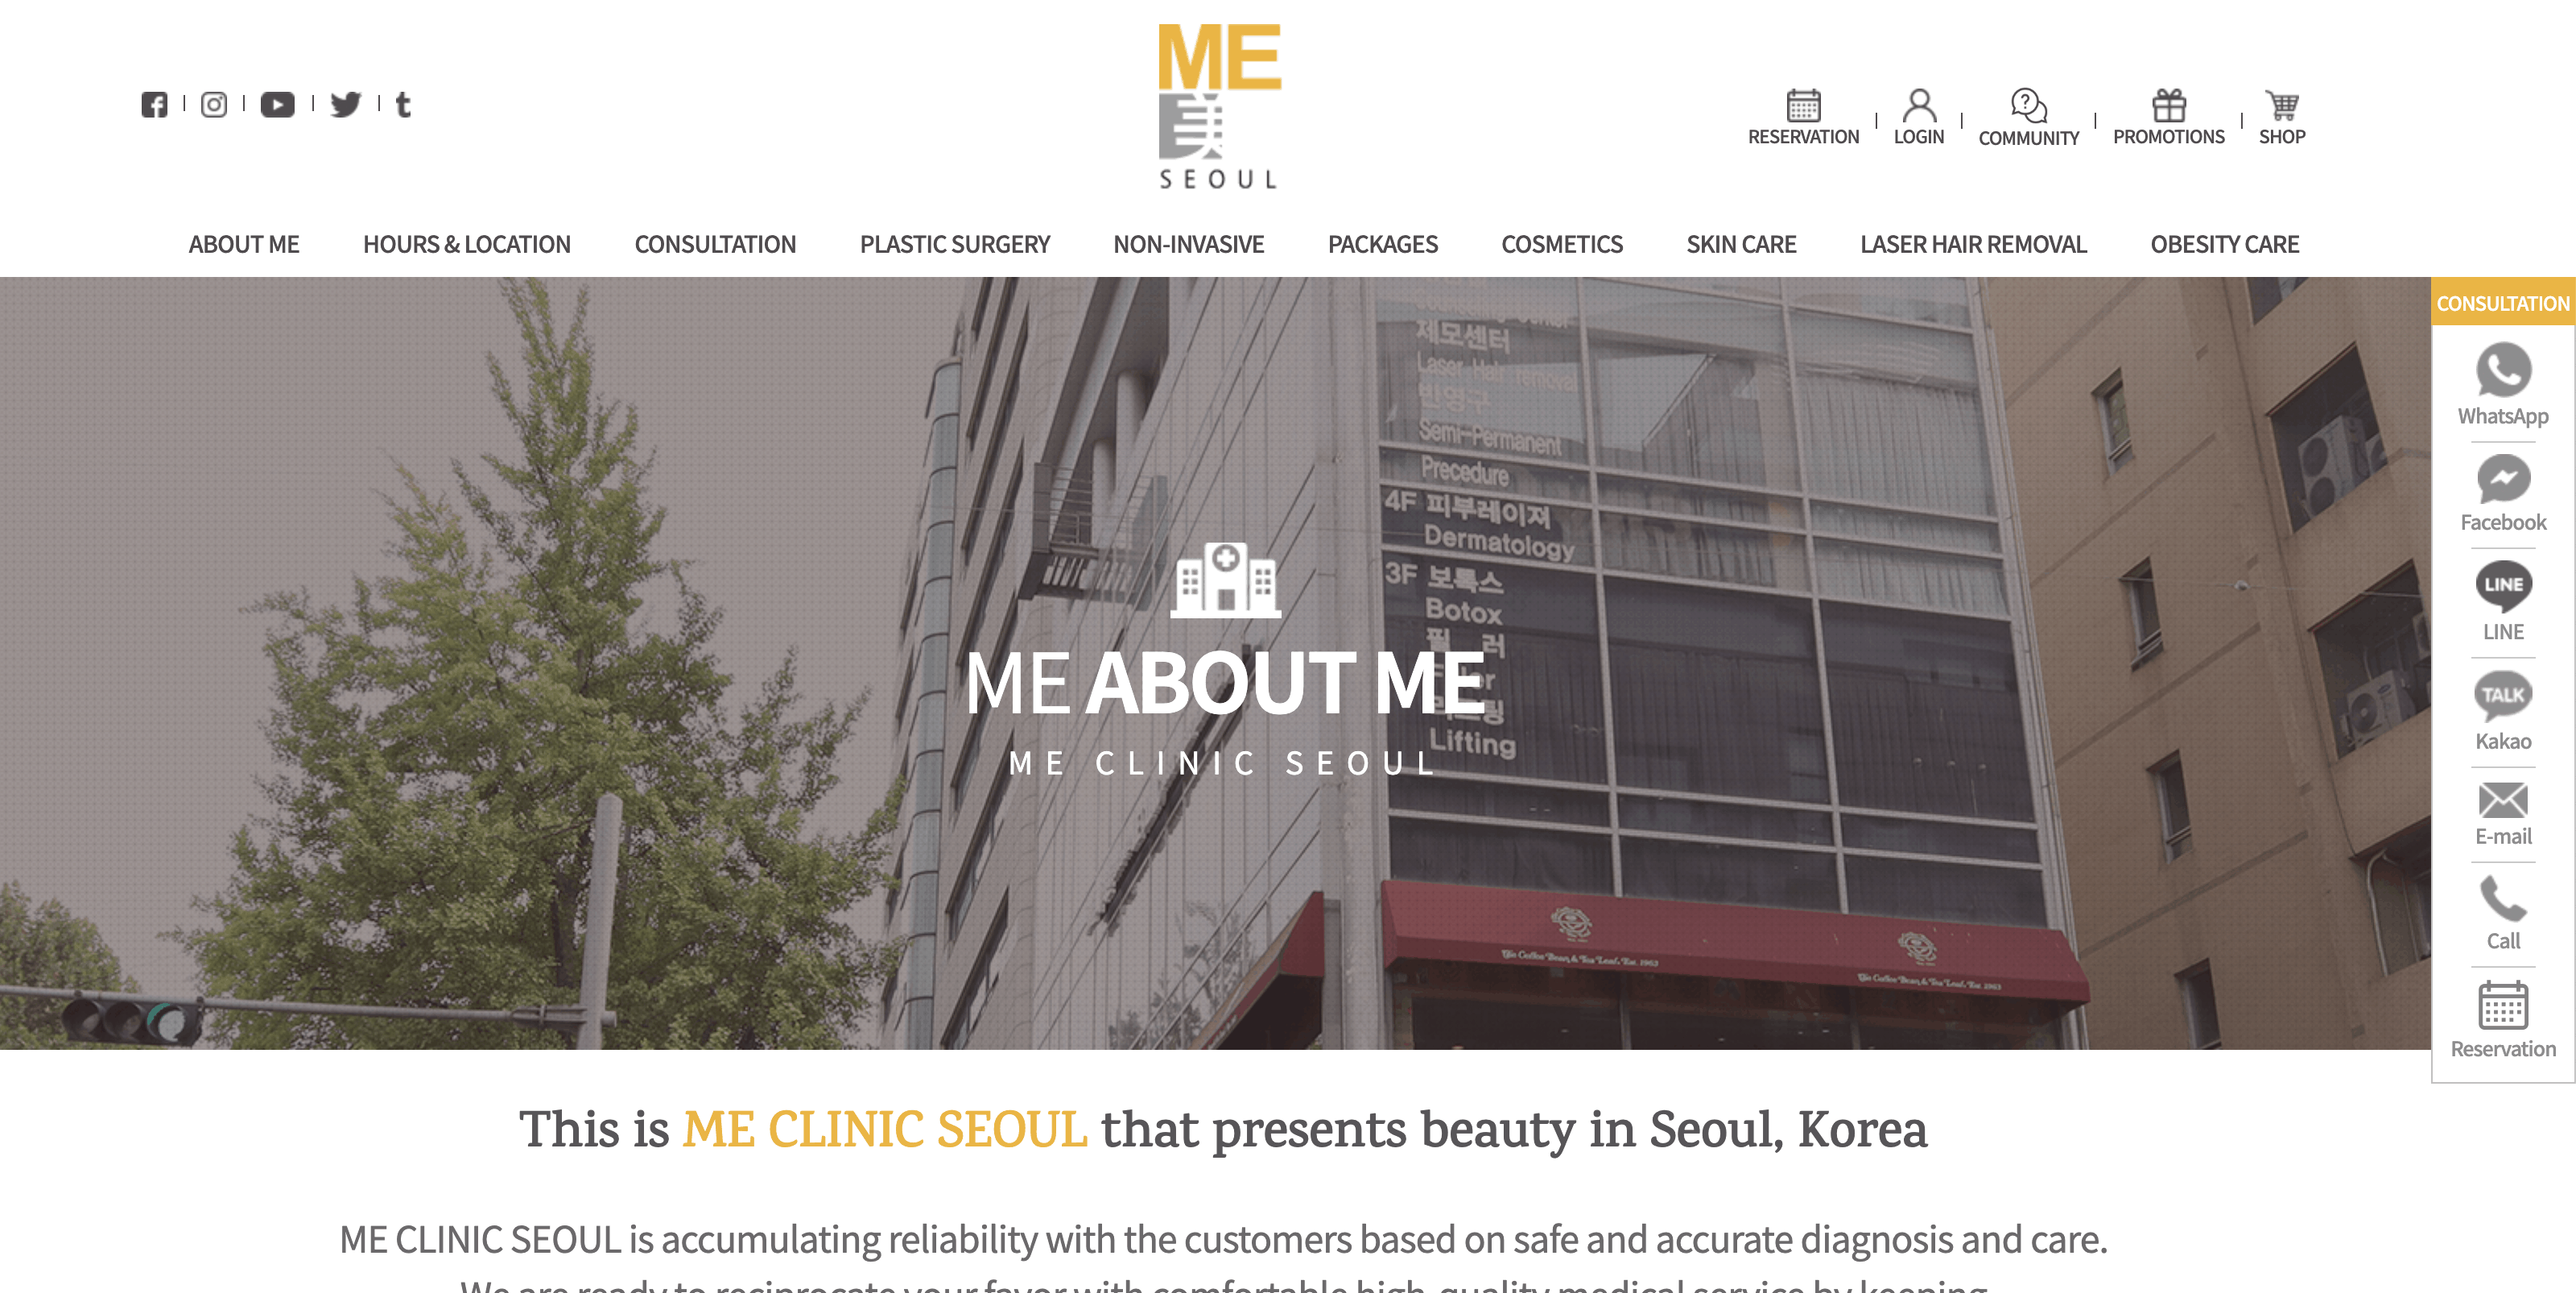 Me Clinic Seoul South Korea - Cc Best Cosmetic Surgery Clinics In South Korea Cy